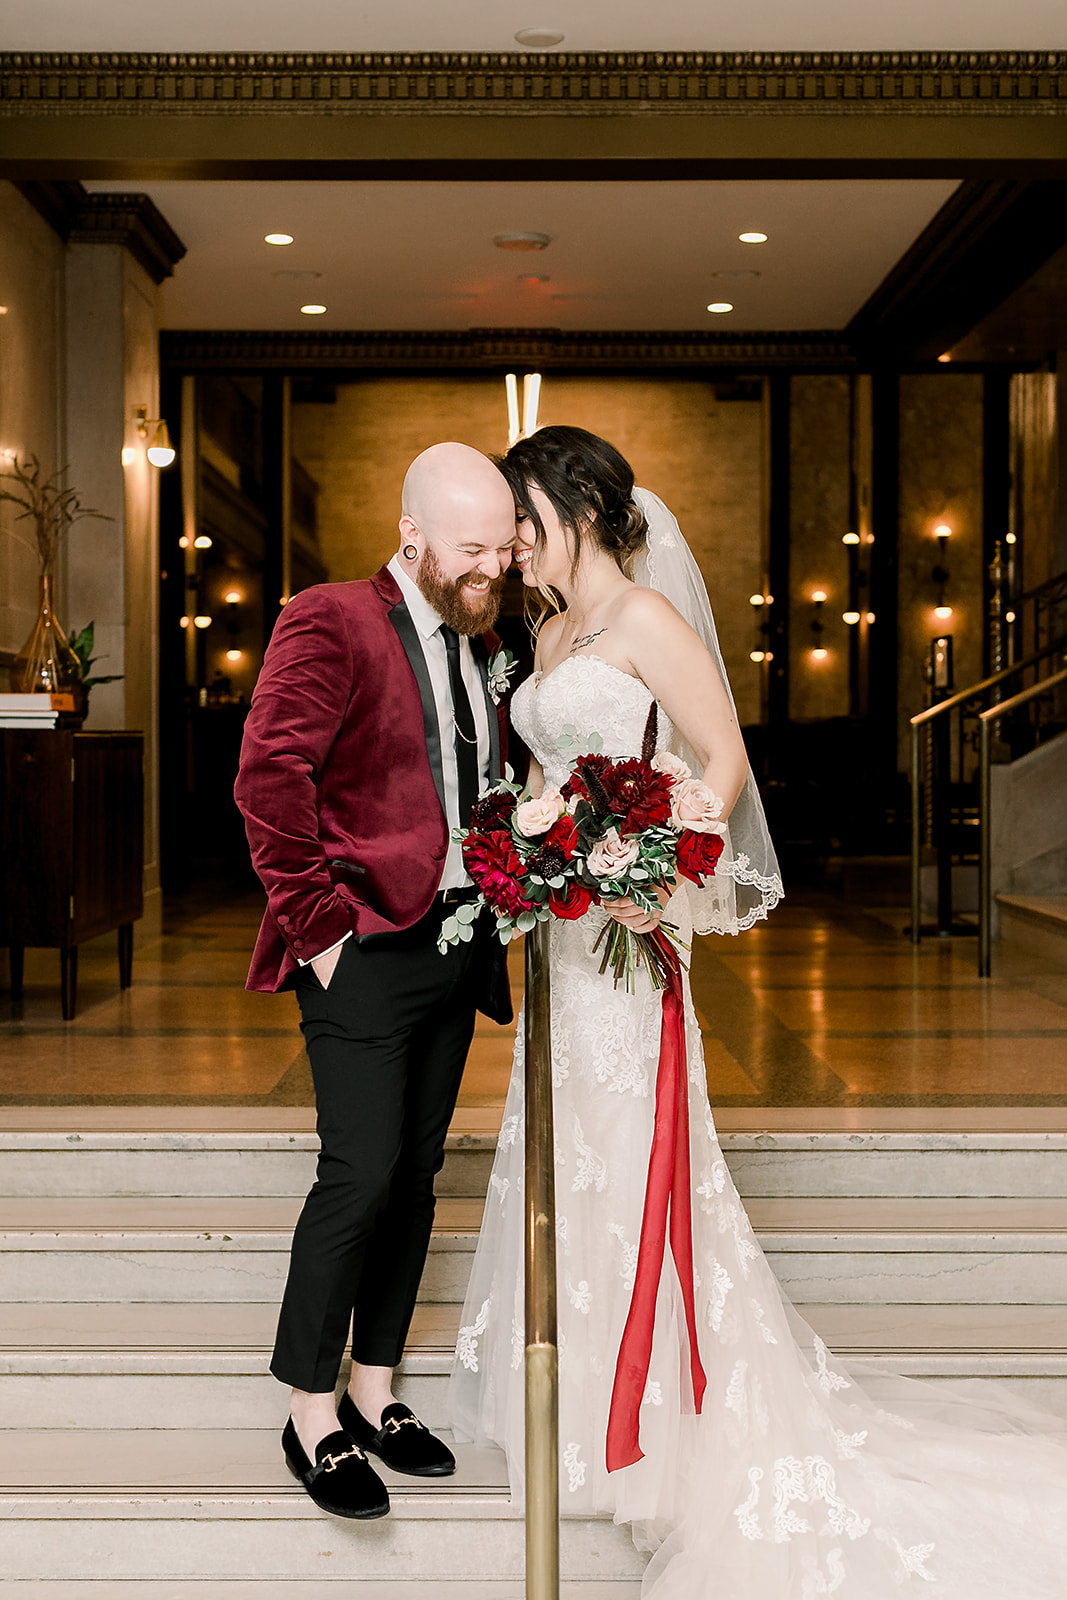 Nashville-Wedding-Planner-Wedding-Day-Manager-Florist-Wedding-Designer-Floral-Curator-Coordinator-Mary-Kate-Steele-Photography-Cannery-Ballroom